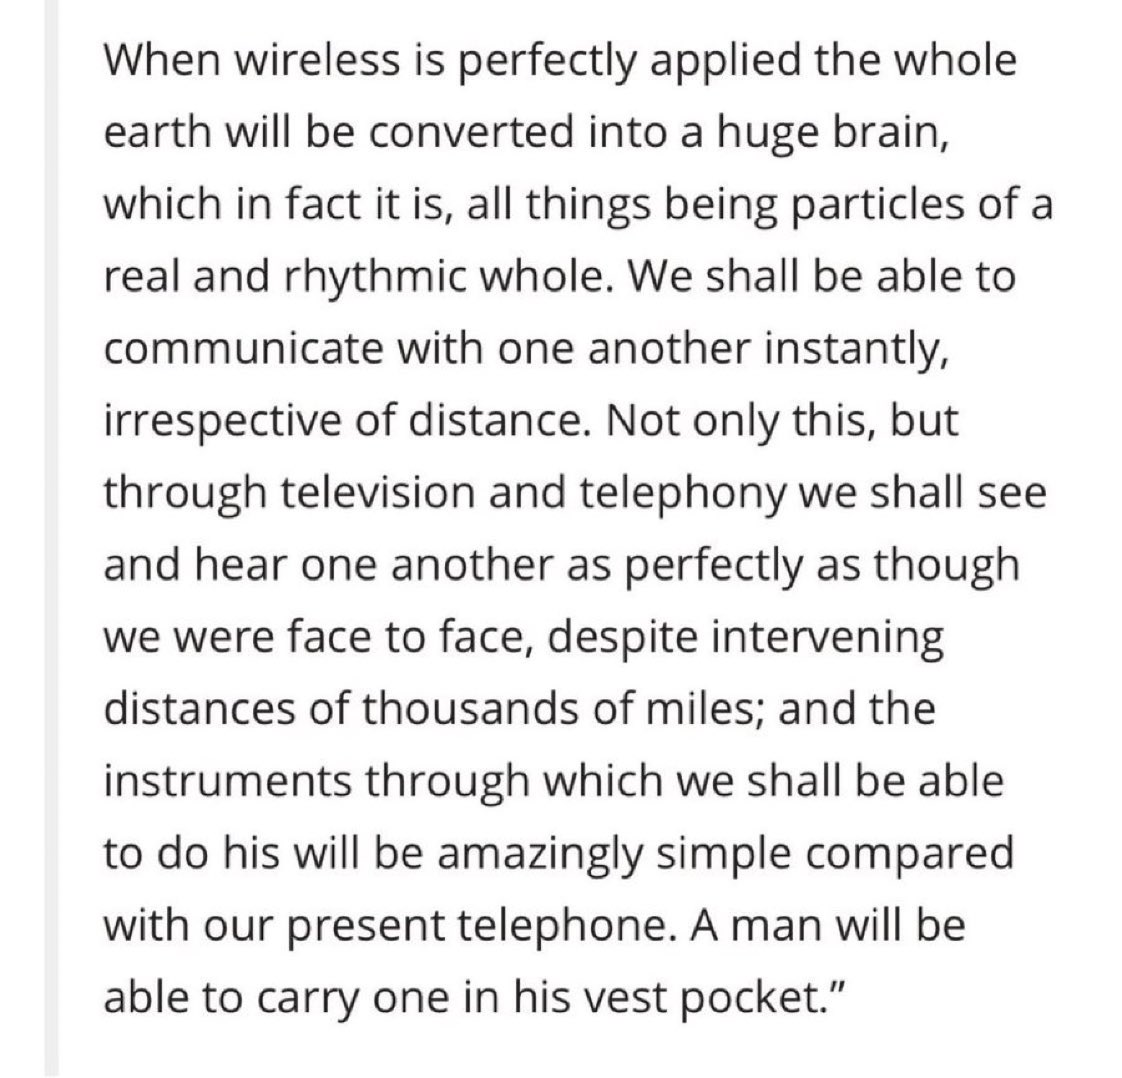 """Nikola Tesla describes the modern-day smartphone, a communication device so """"simple"""" that we will be able to carry it in our """"vest pocket,"""" back in a 1926 interview with Collier's magazine."""